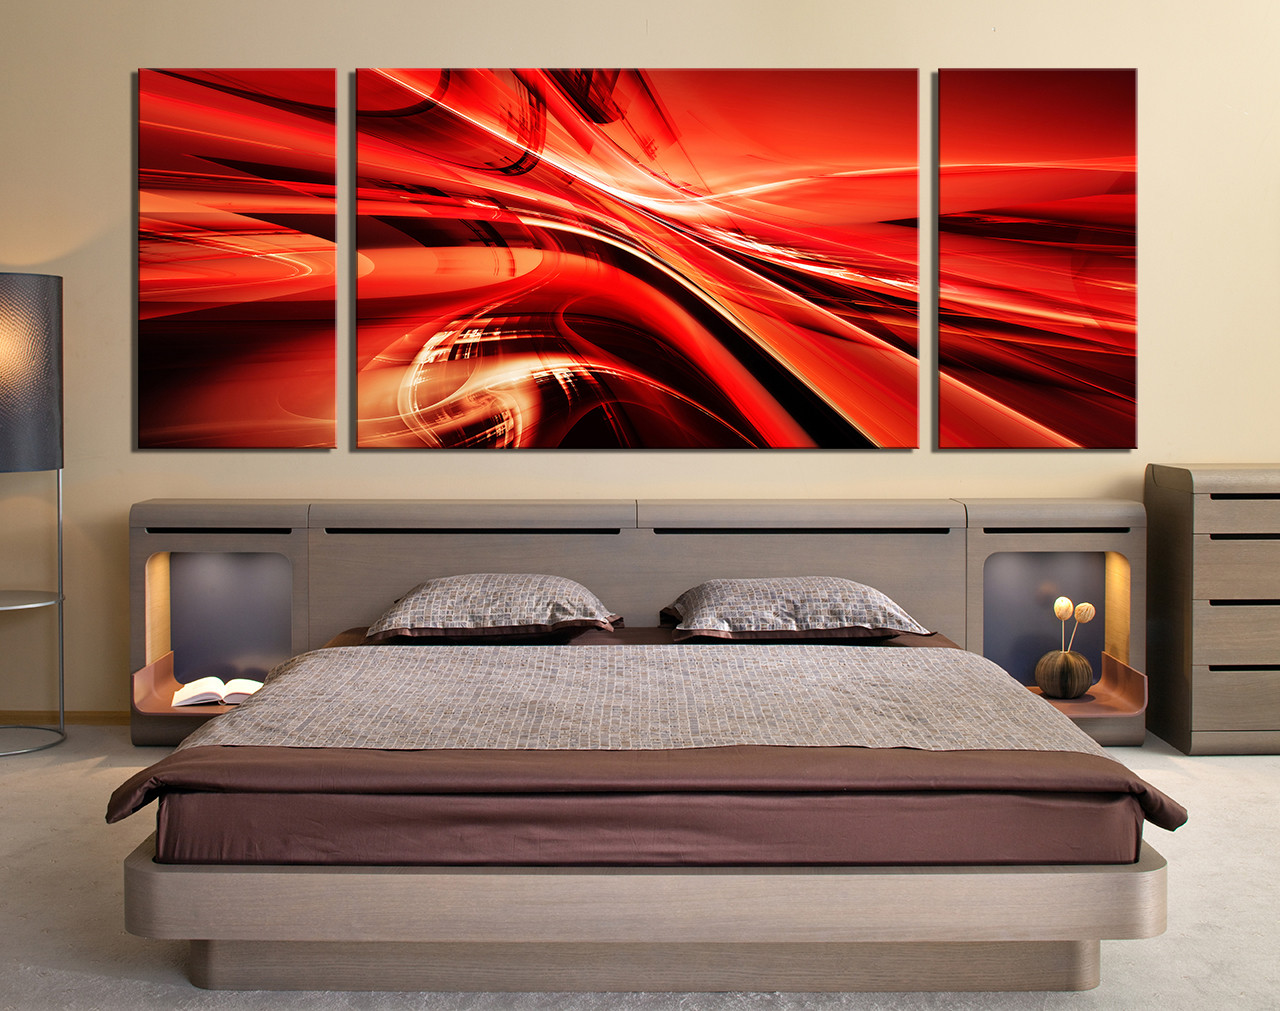 3 piece group canvas modern photo canvas abstract art bedroom large pictures